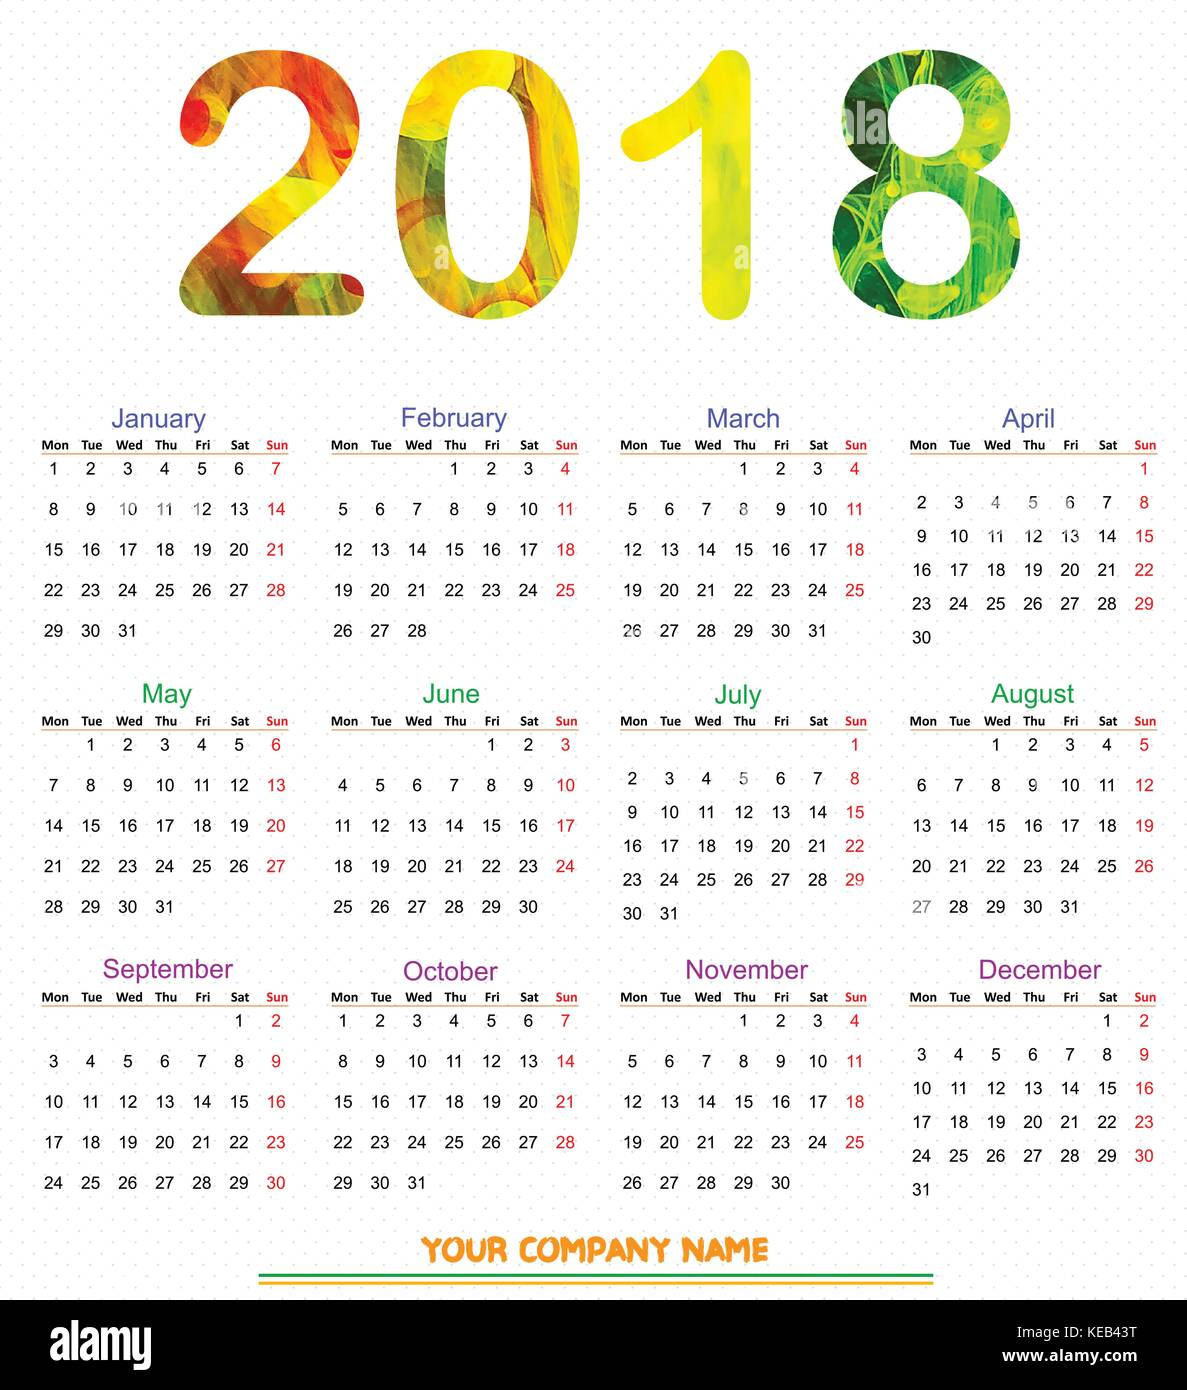 12 months calendar design 2018 printable and editable